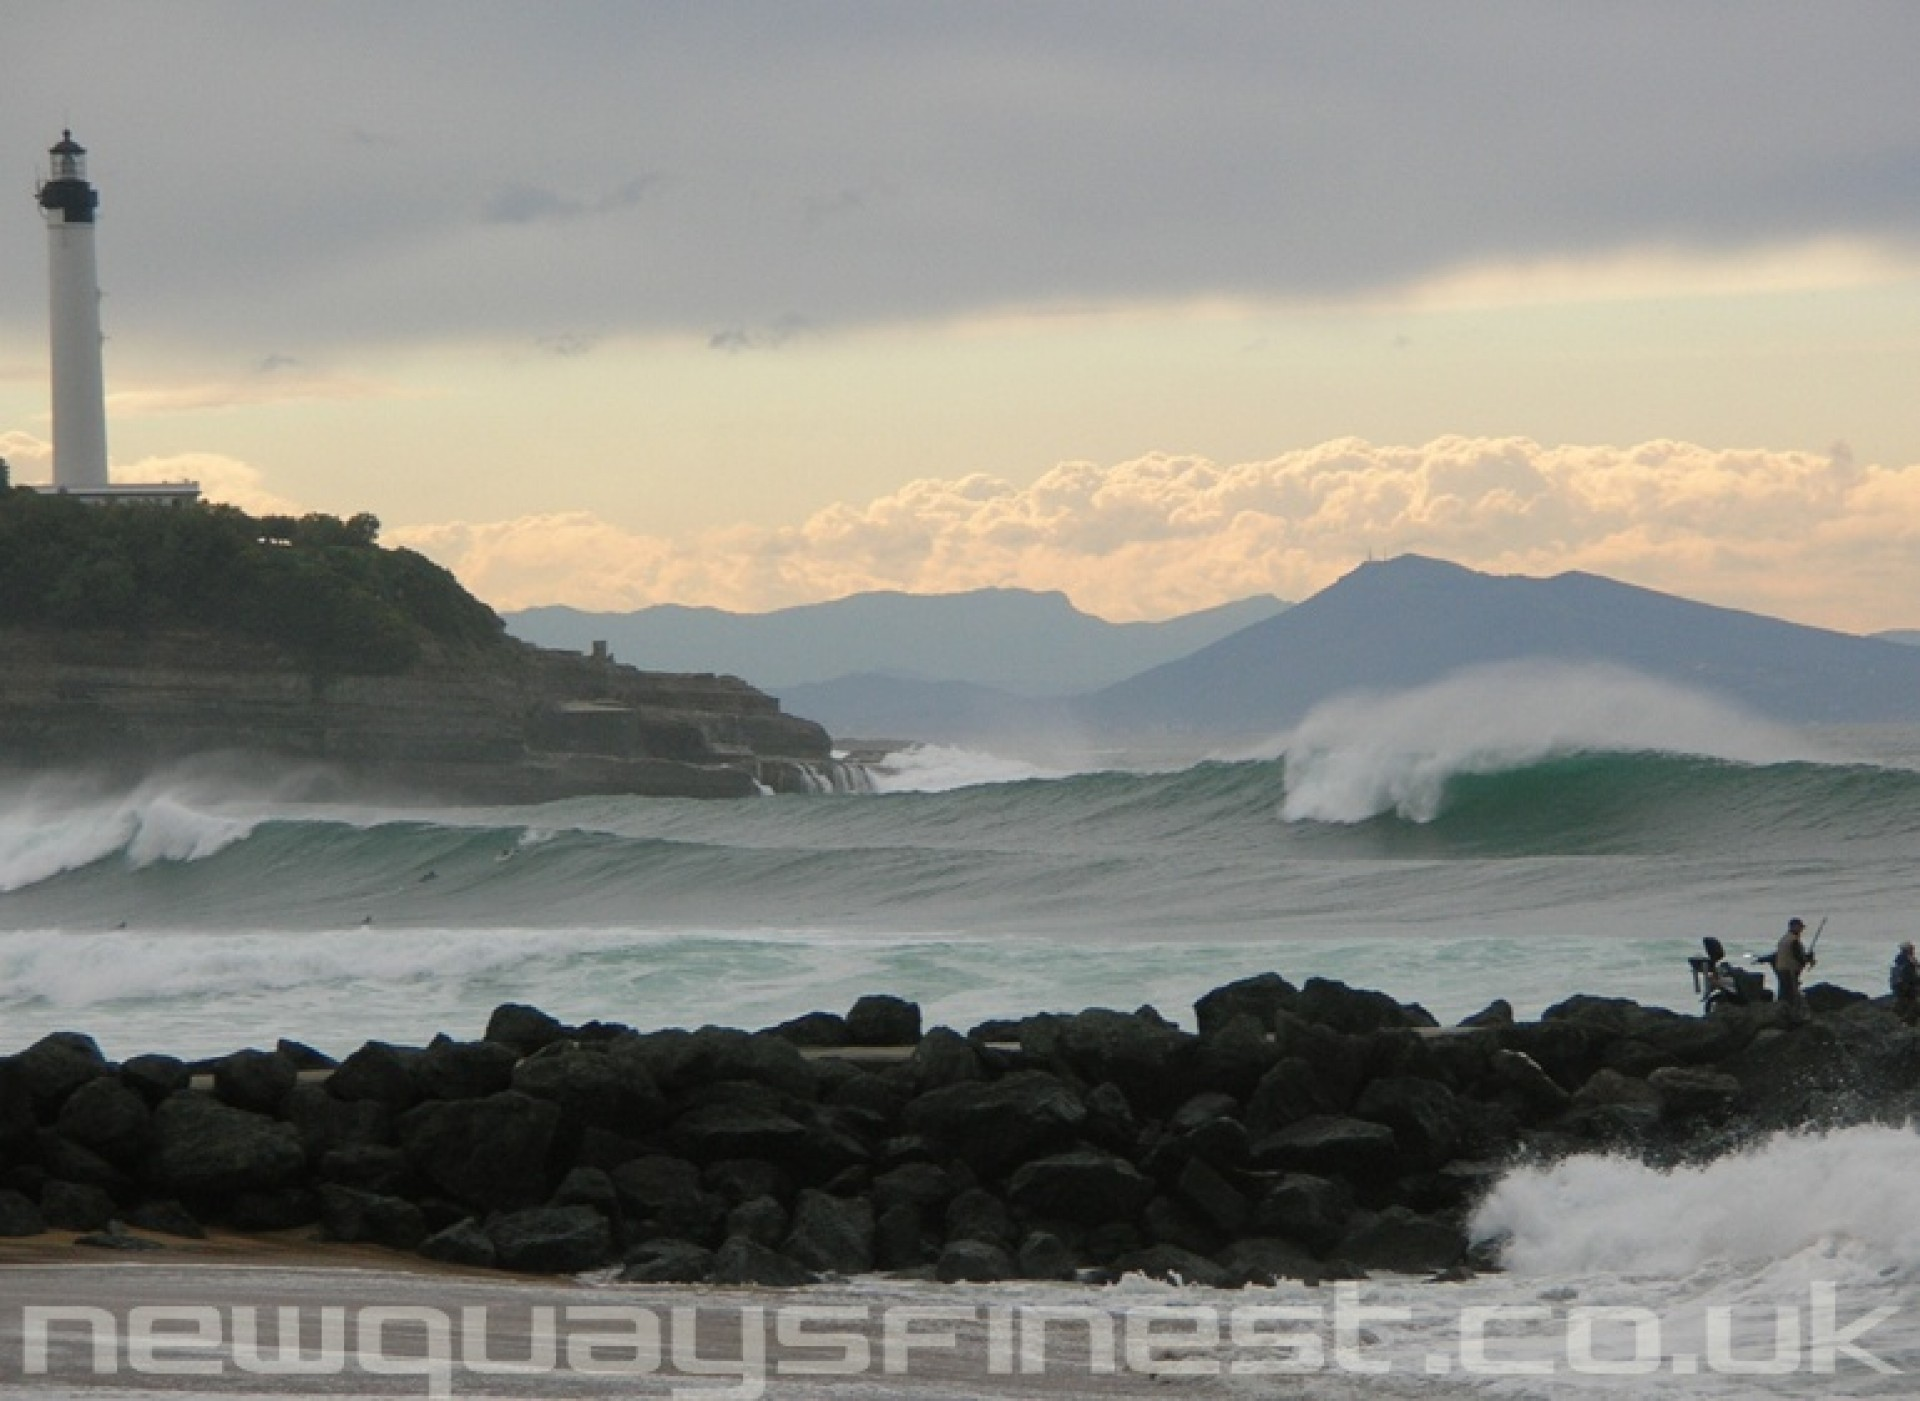 Newquay's Finest's photo of Hossegor (La Graviere)